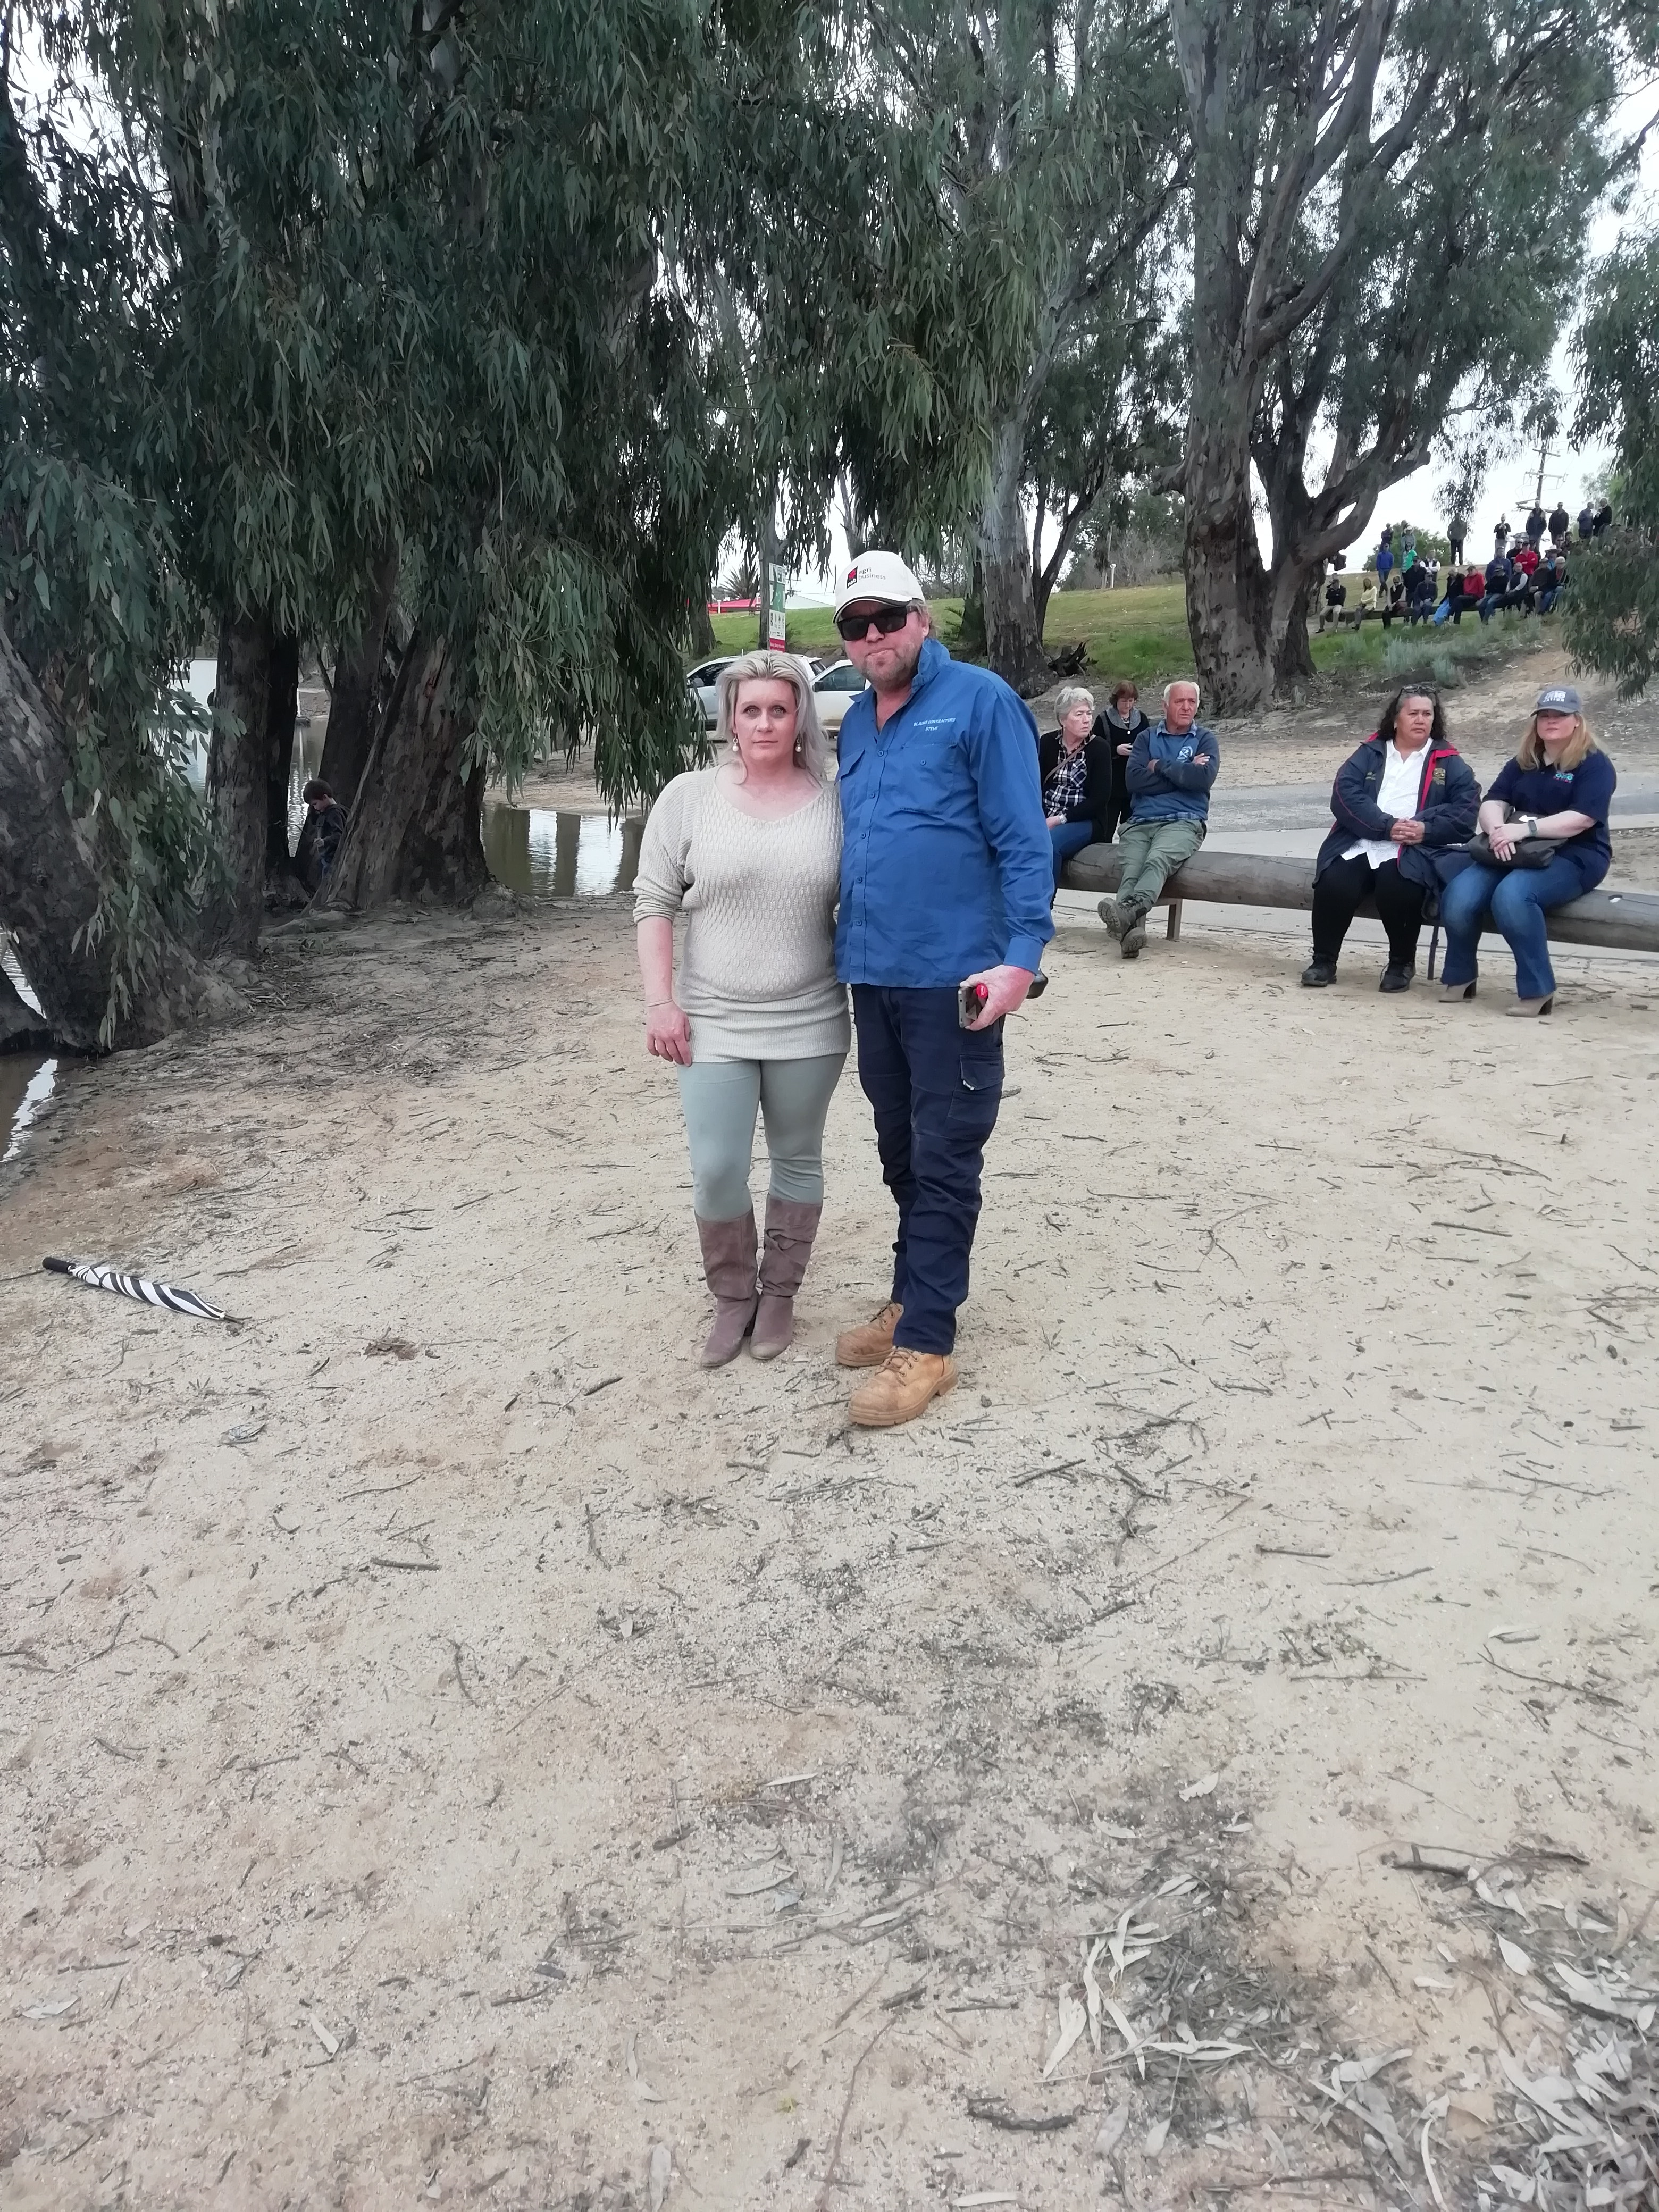 Victorian farmer Melissa Portingale, who tried to trade a rare collectible Woolworths Ooshie for irrigation water, said the plan is 'absolute chaos'.